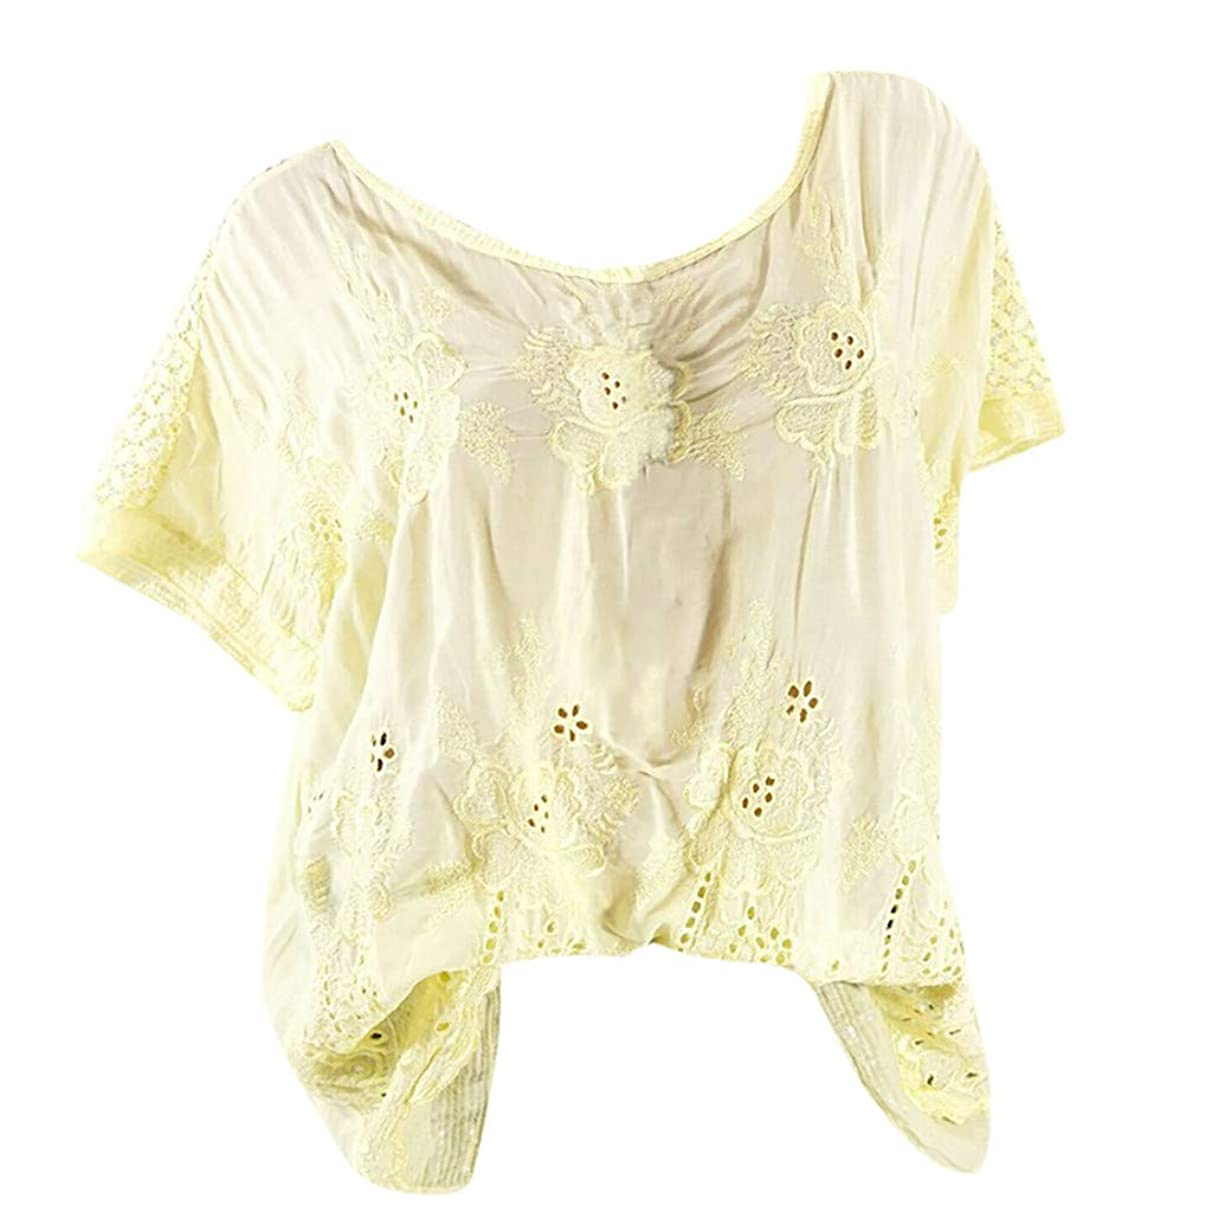 Eaktool T Shirts for Women,Women Casual Short Sleeve Lace Solid Fashion Loose Plue Size Tops Shirt Blouse